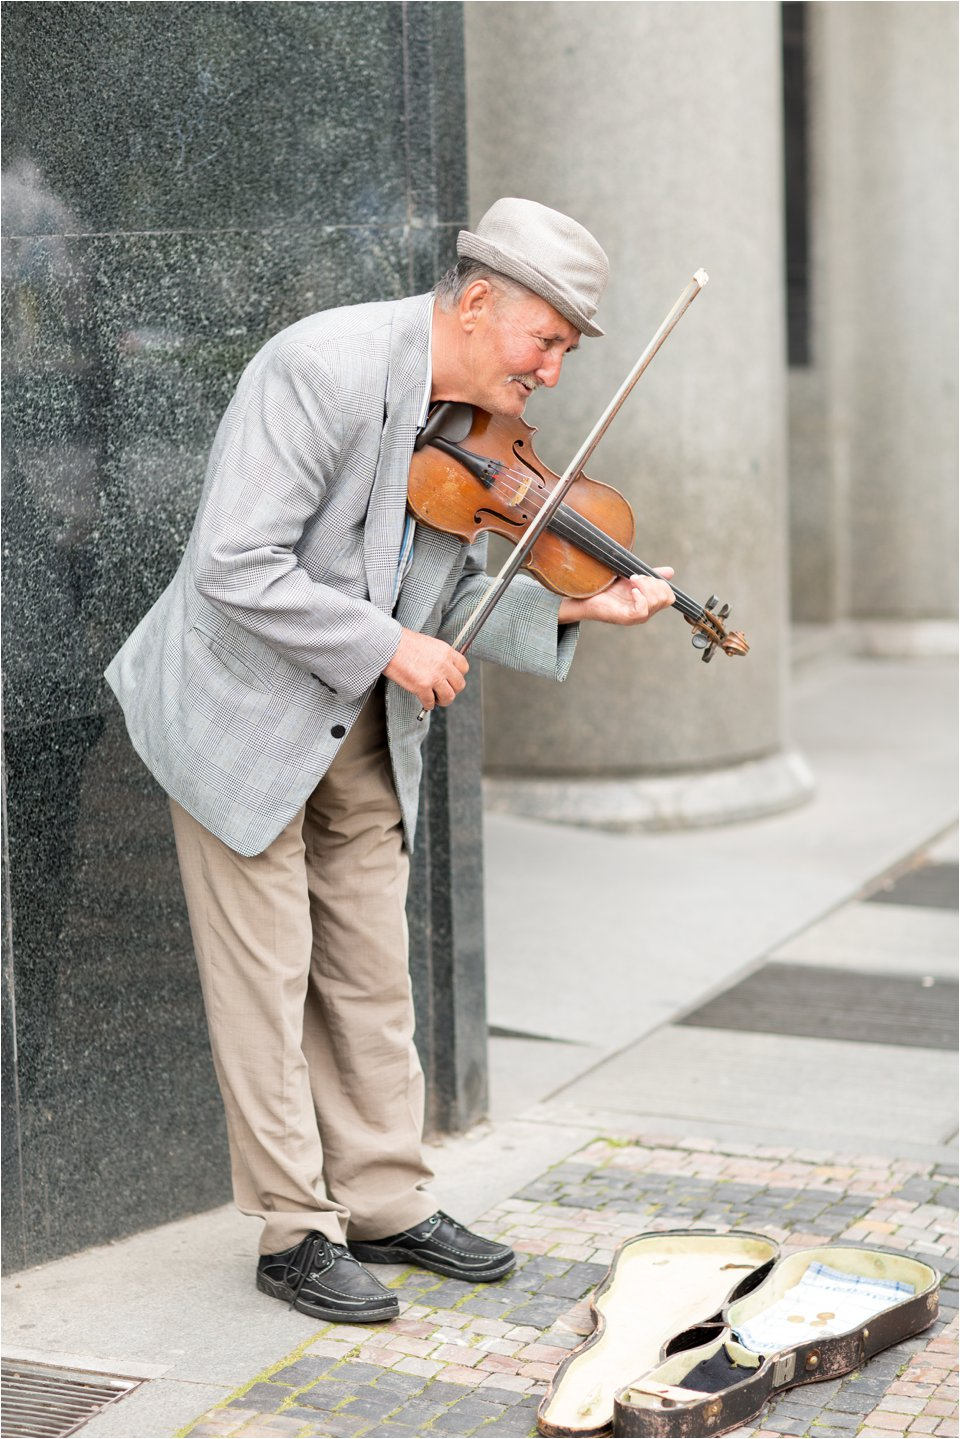 Violinist in Wenceslas Square (C) Maundy Mitchell